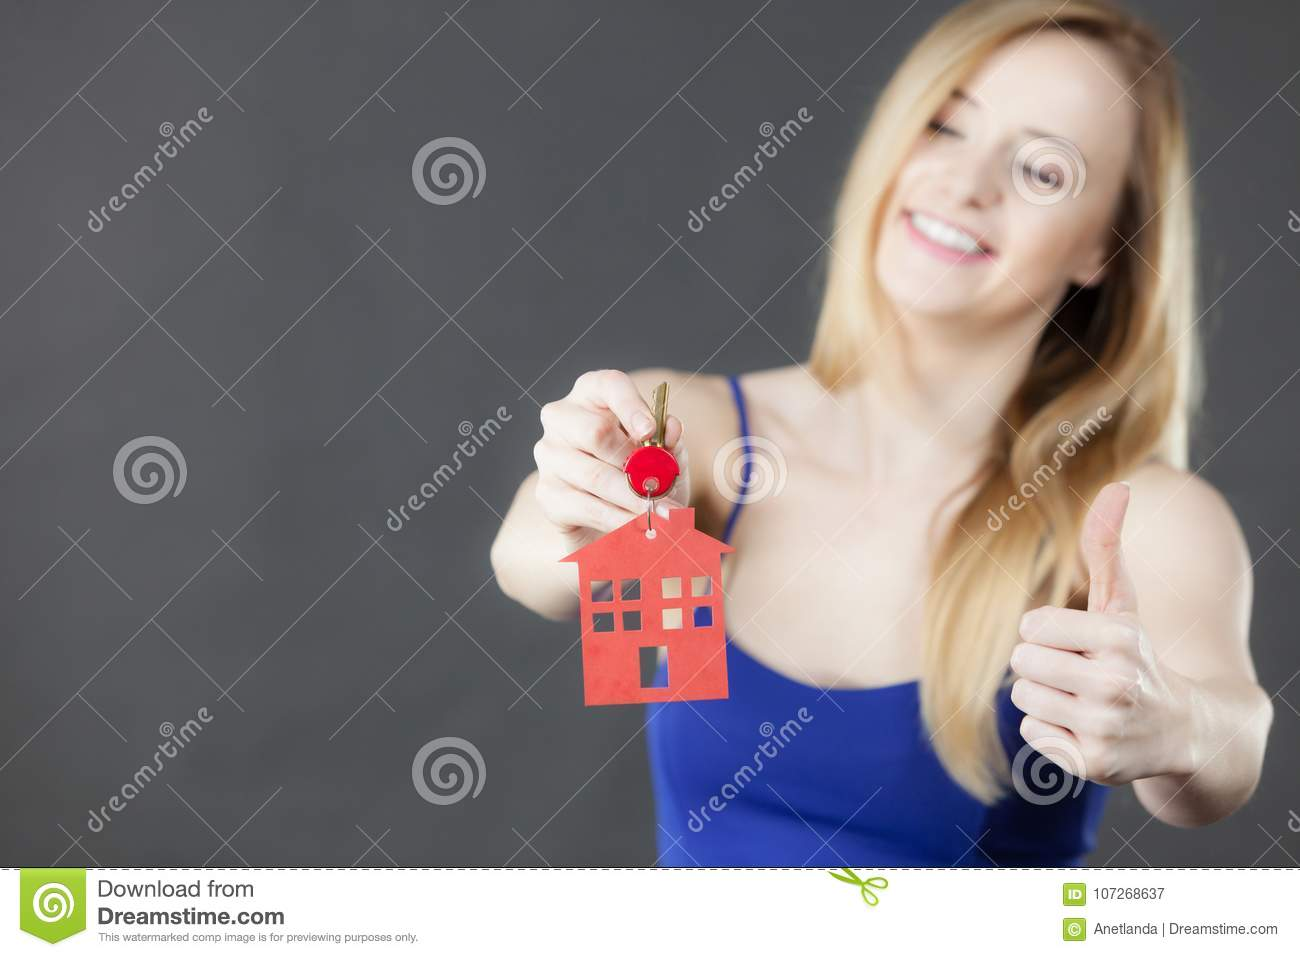 2077cefe6b Woman Holding Key With House Symbol Stock Image - Image of success ...